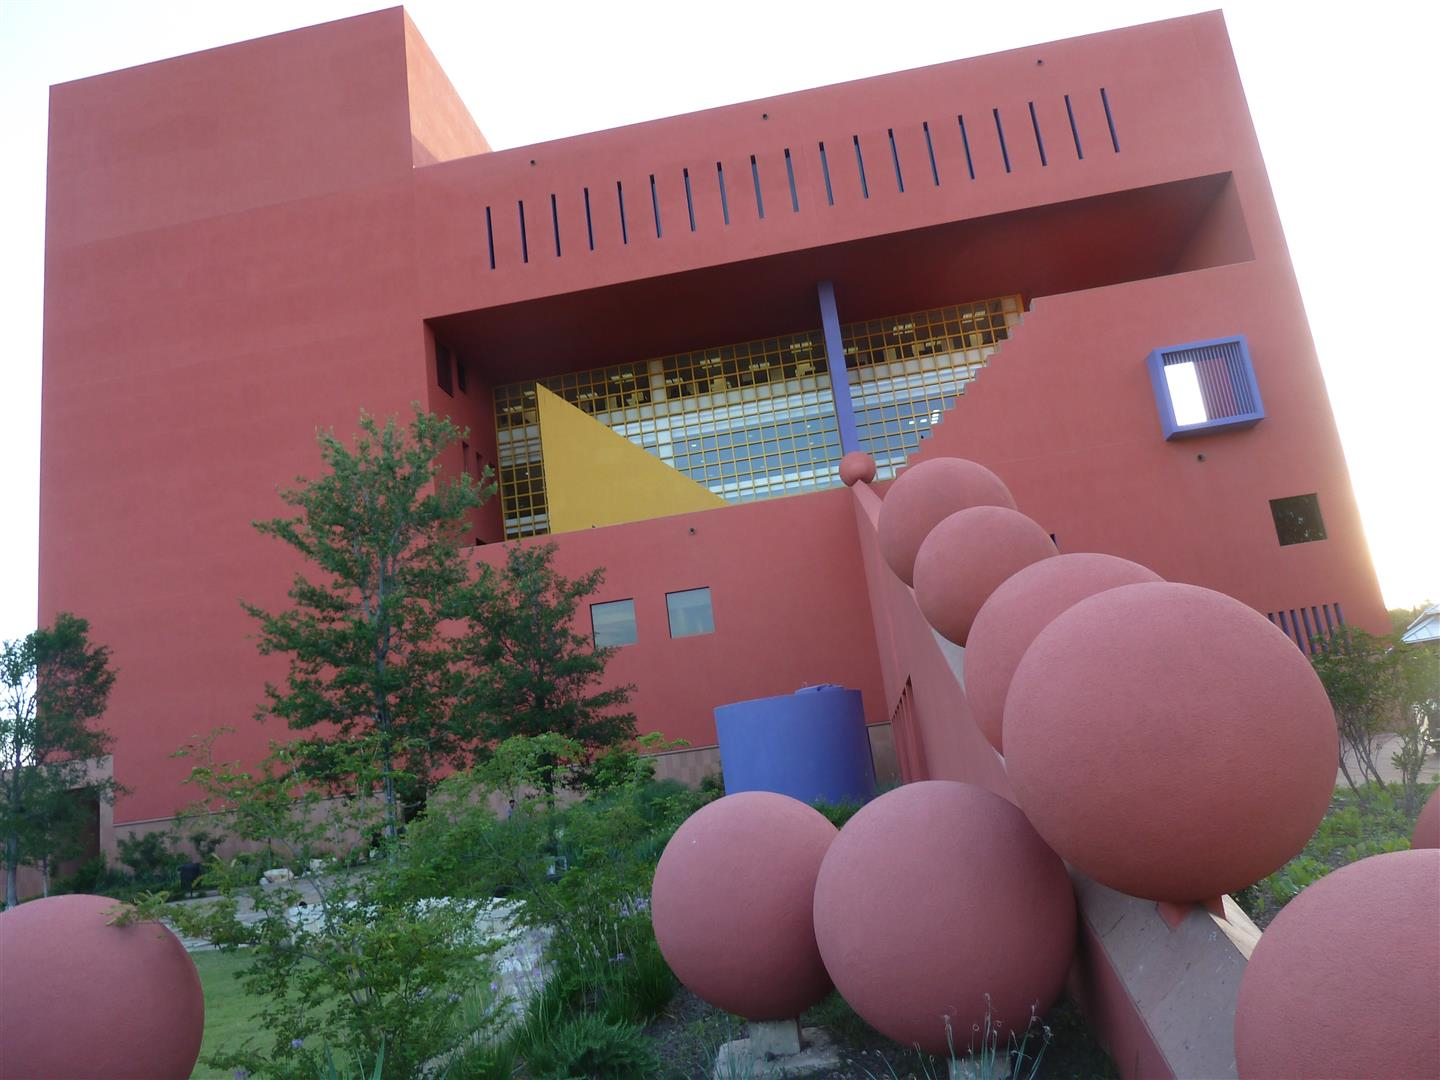 The architecture of the San Antonio Public Library has fun playfulness about it.  It opened in mid '90s at a cost of $38 million.